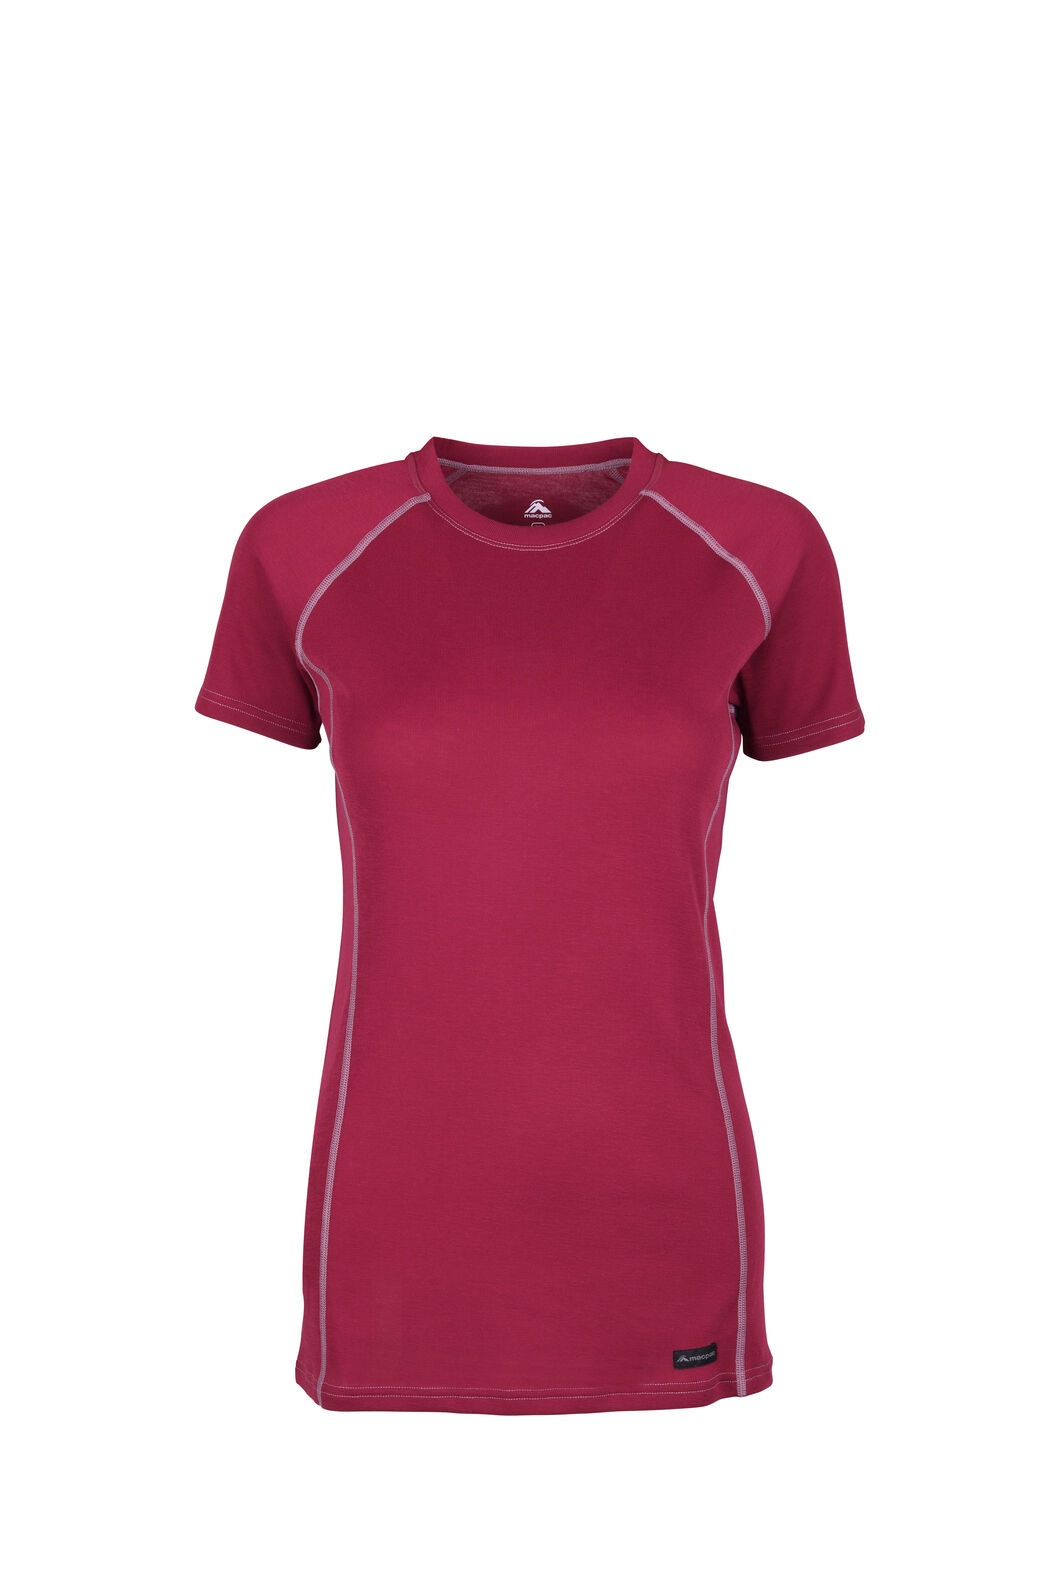 Macpac Geothermal Short Sleeve Top — Women's, Red Plum, hi-res